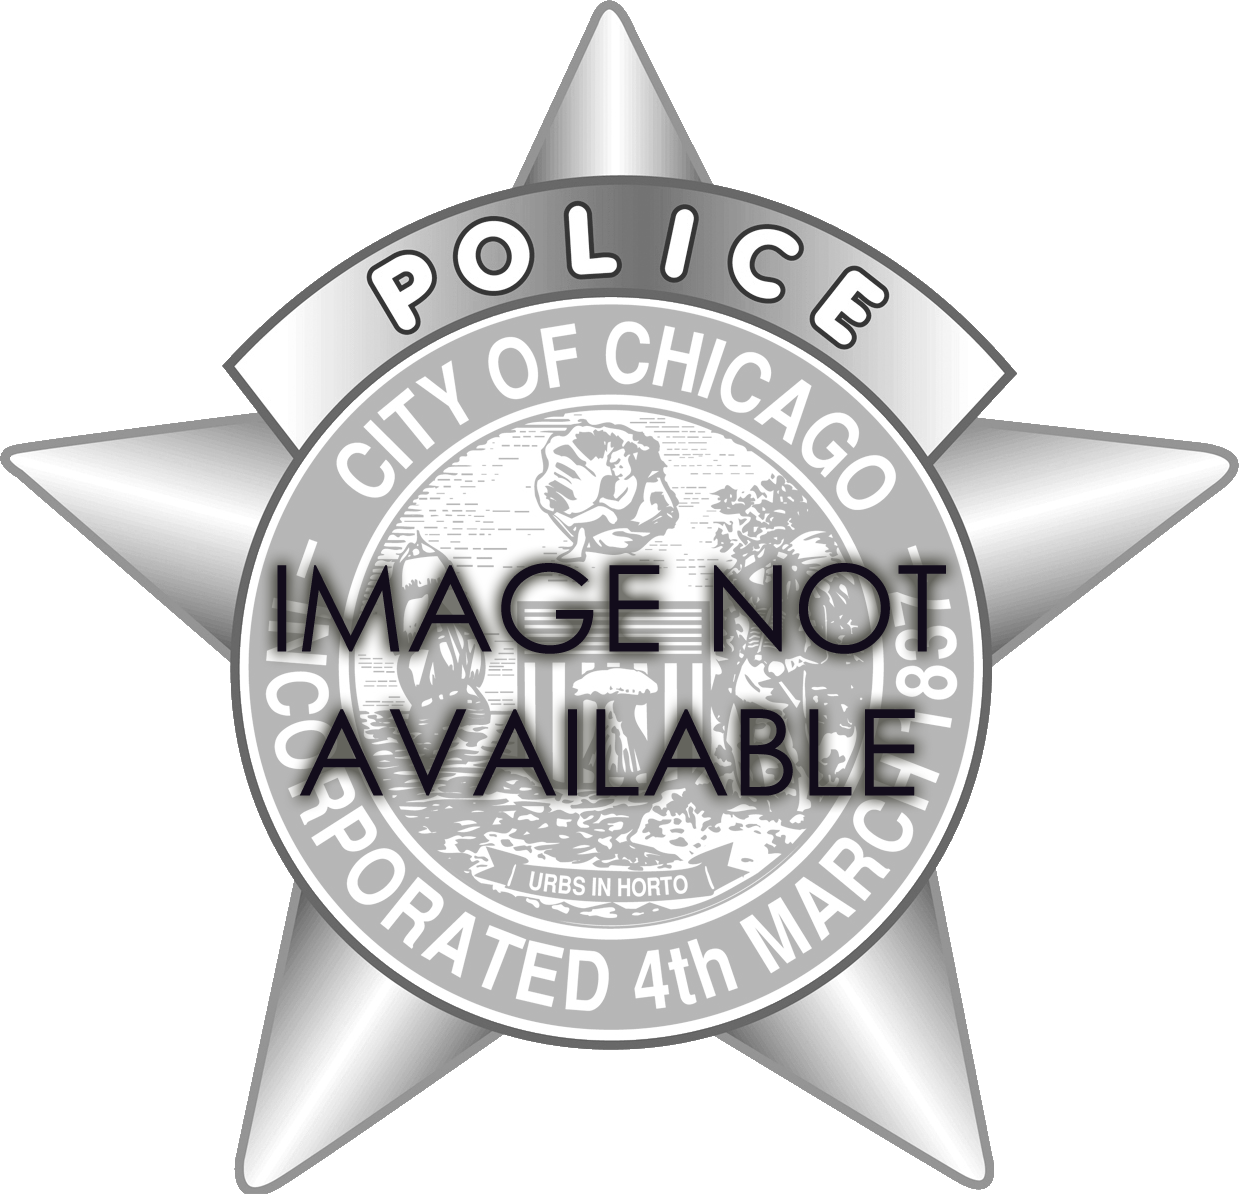 1955 Series - Chicago Police Youth Investigator Star - Obverse